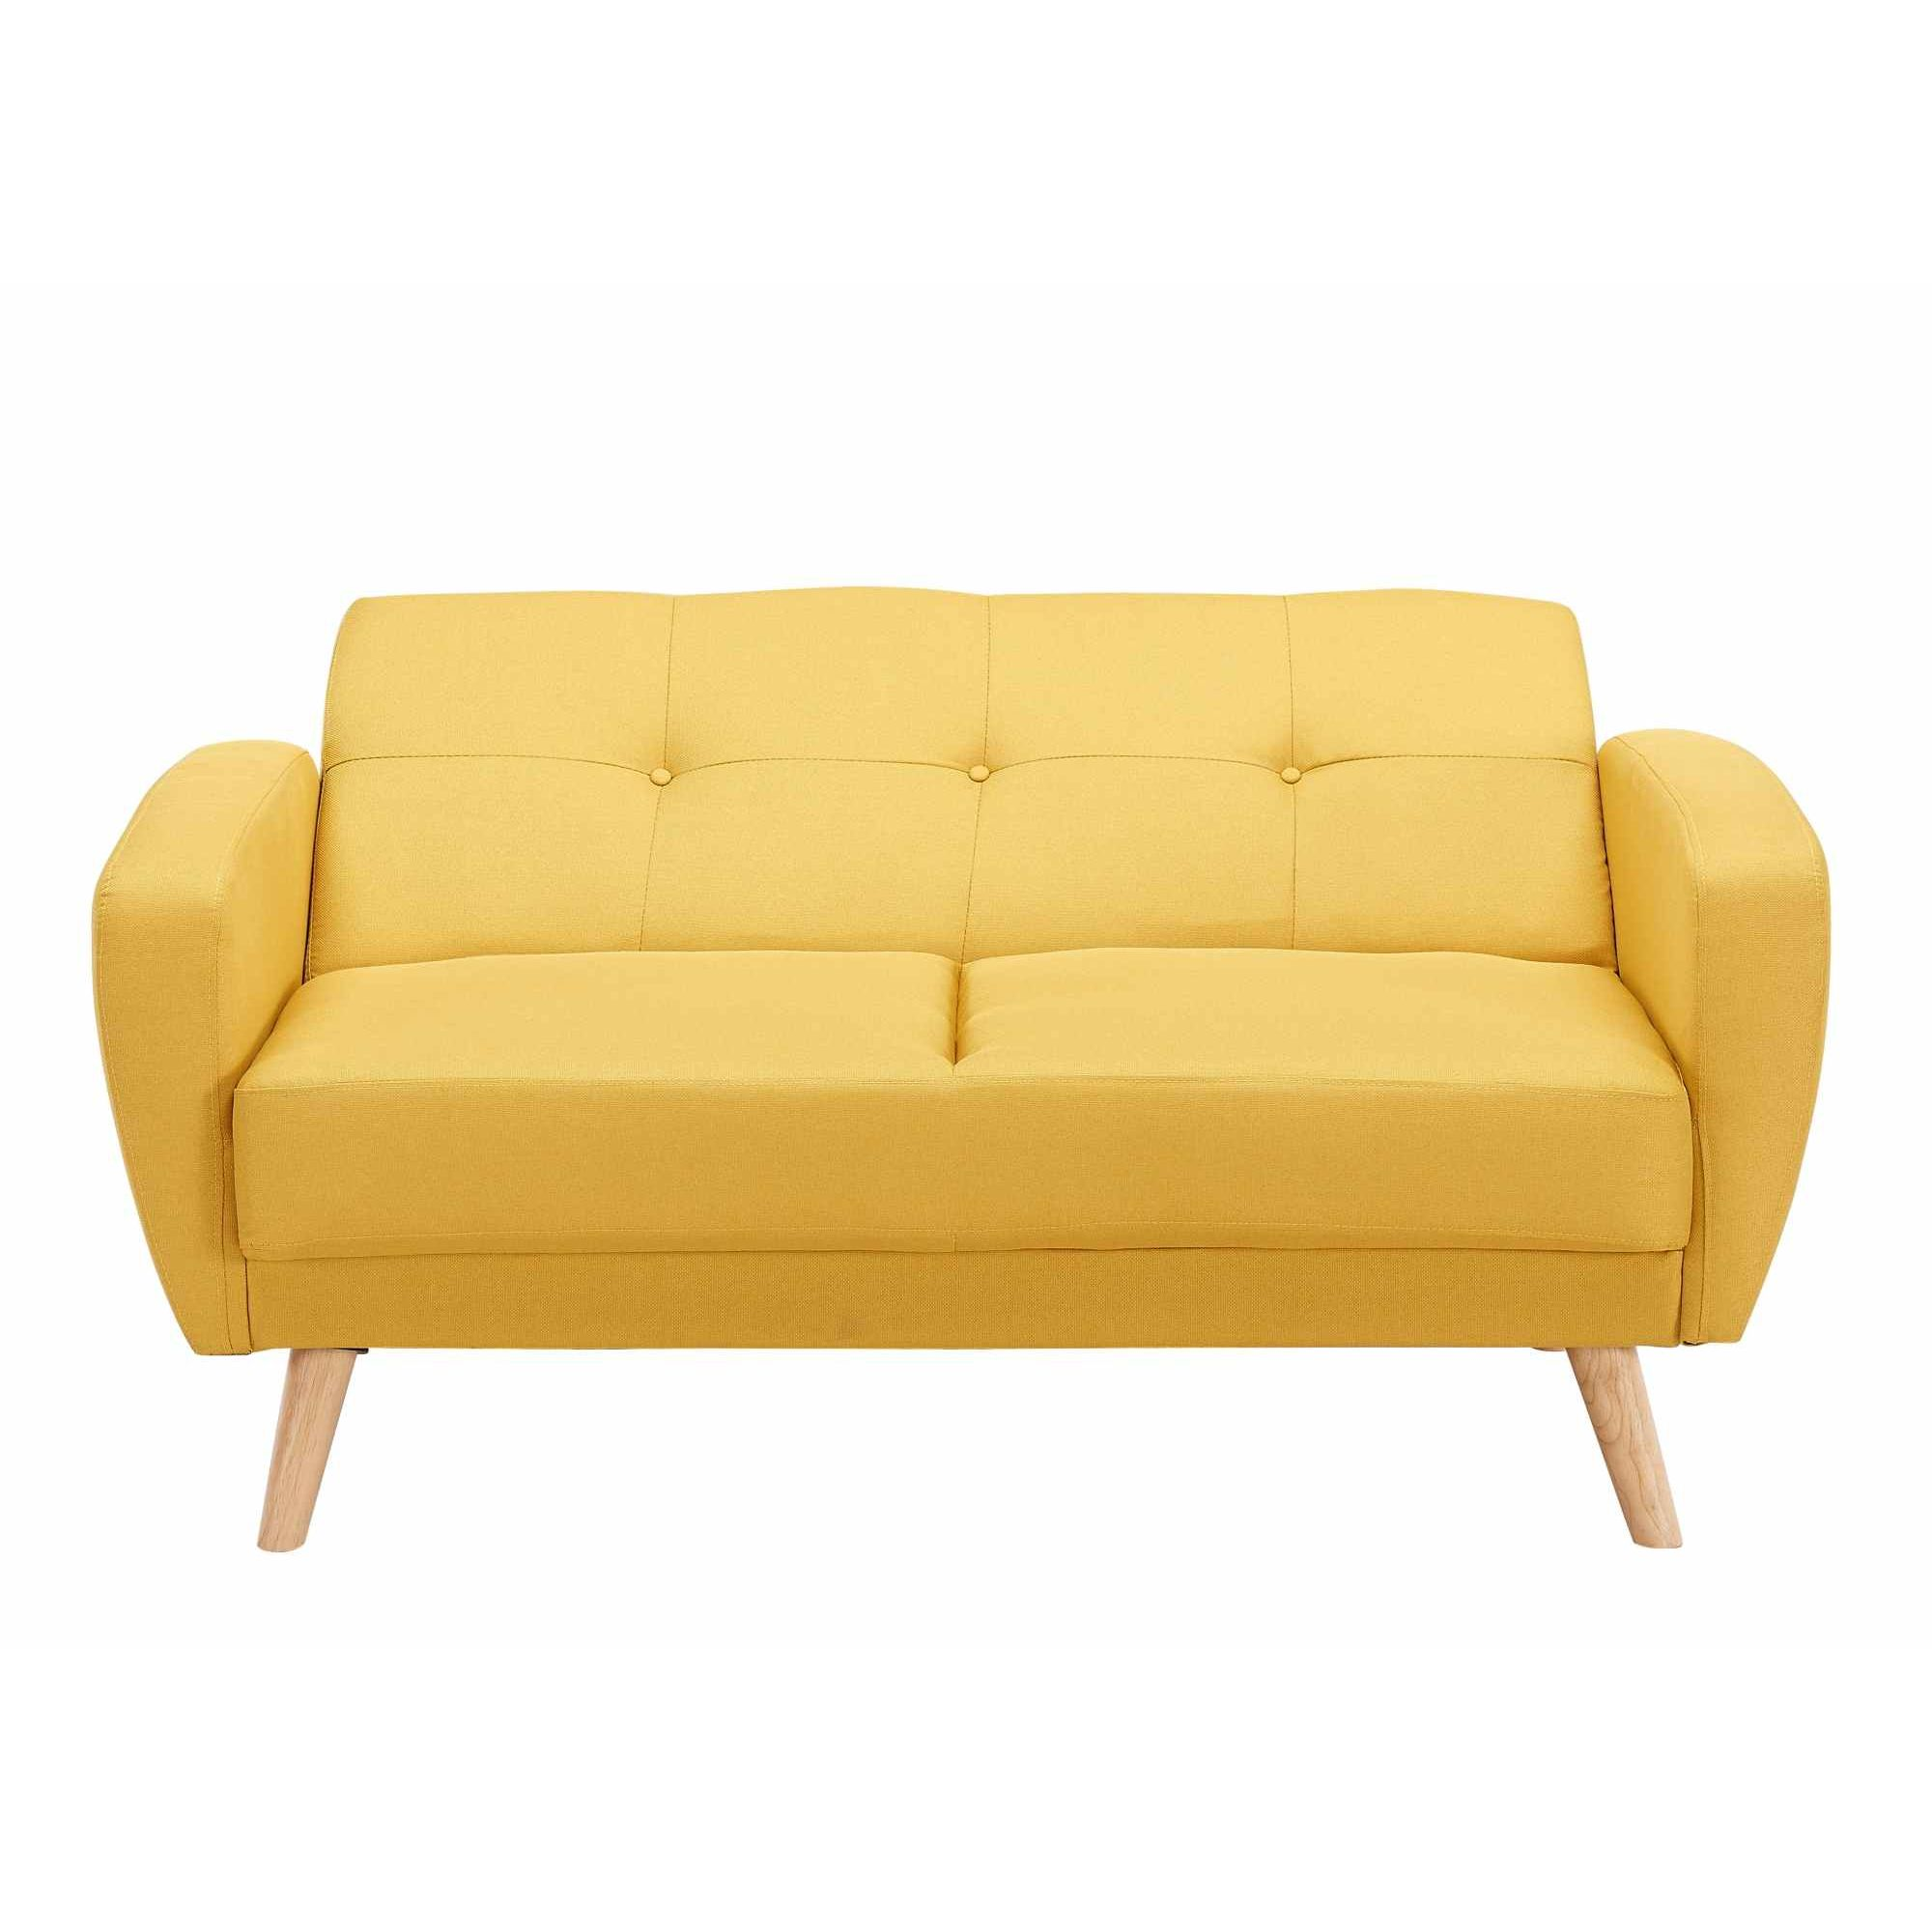 Canape convertible jaune maison design for Maison du monde royan